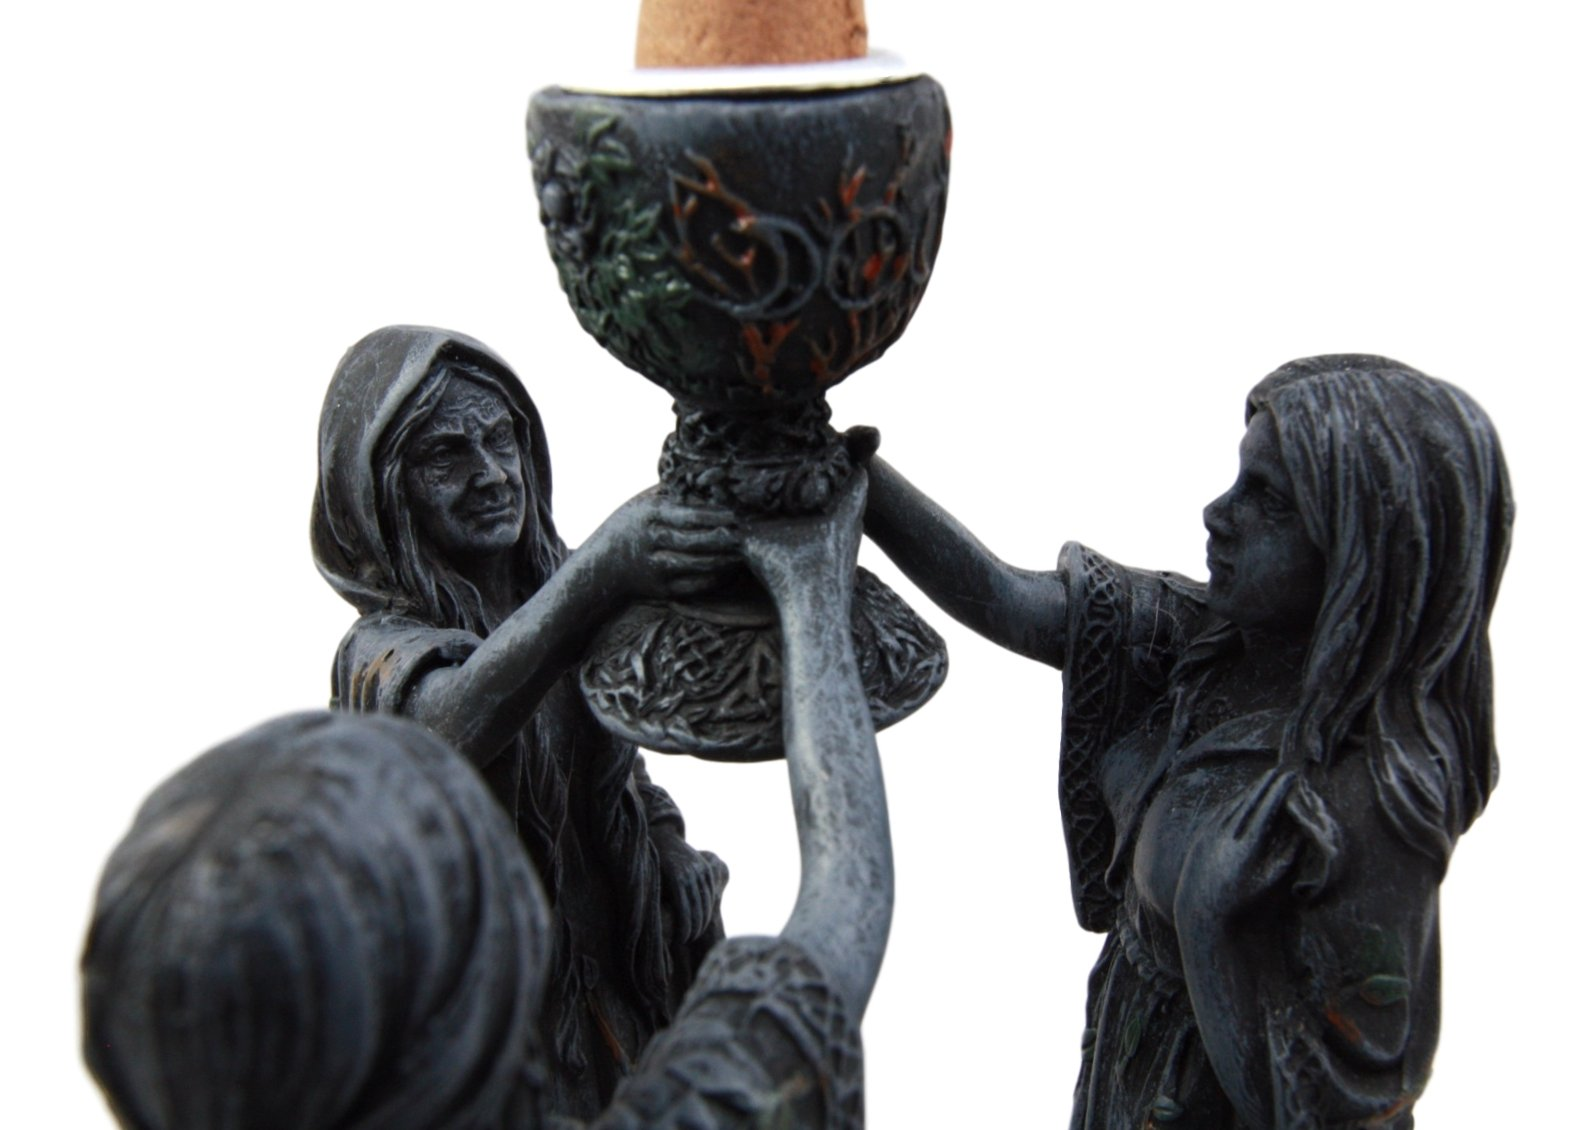 Atlantic Collectibles Wiccan Triple Goddess Maiden Expectant Mother & Crone Pagan Decorative Backflow Incense Cone Burner Figurine by Atlantic (Image #5)